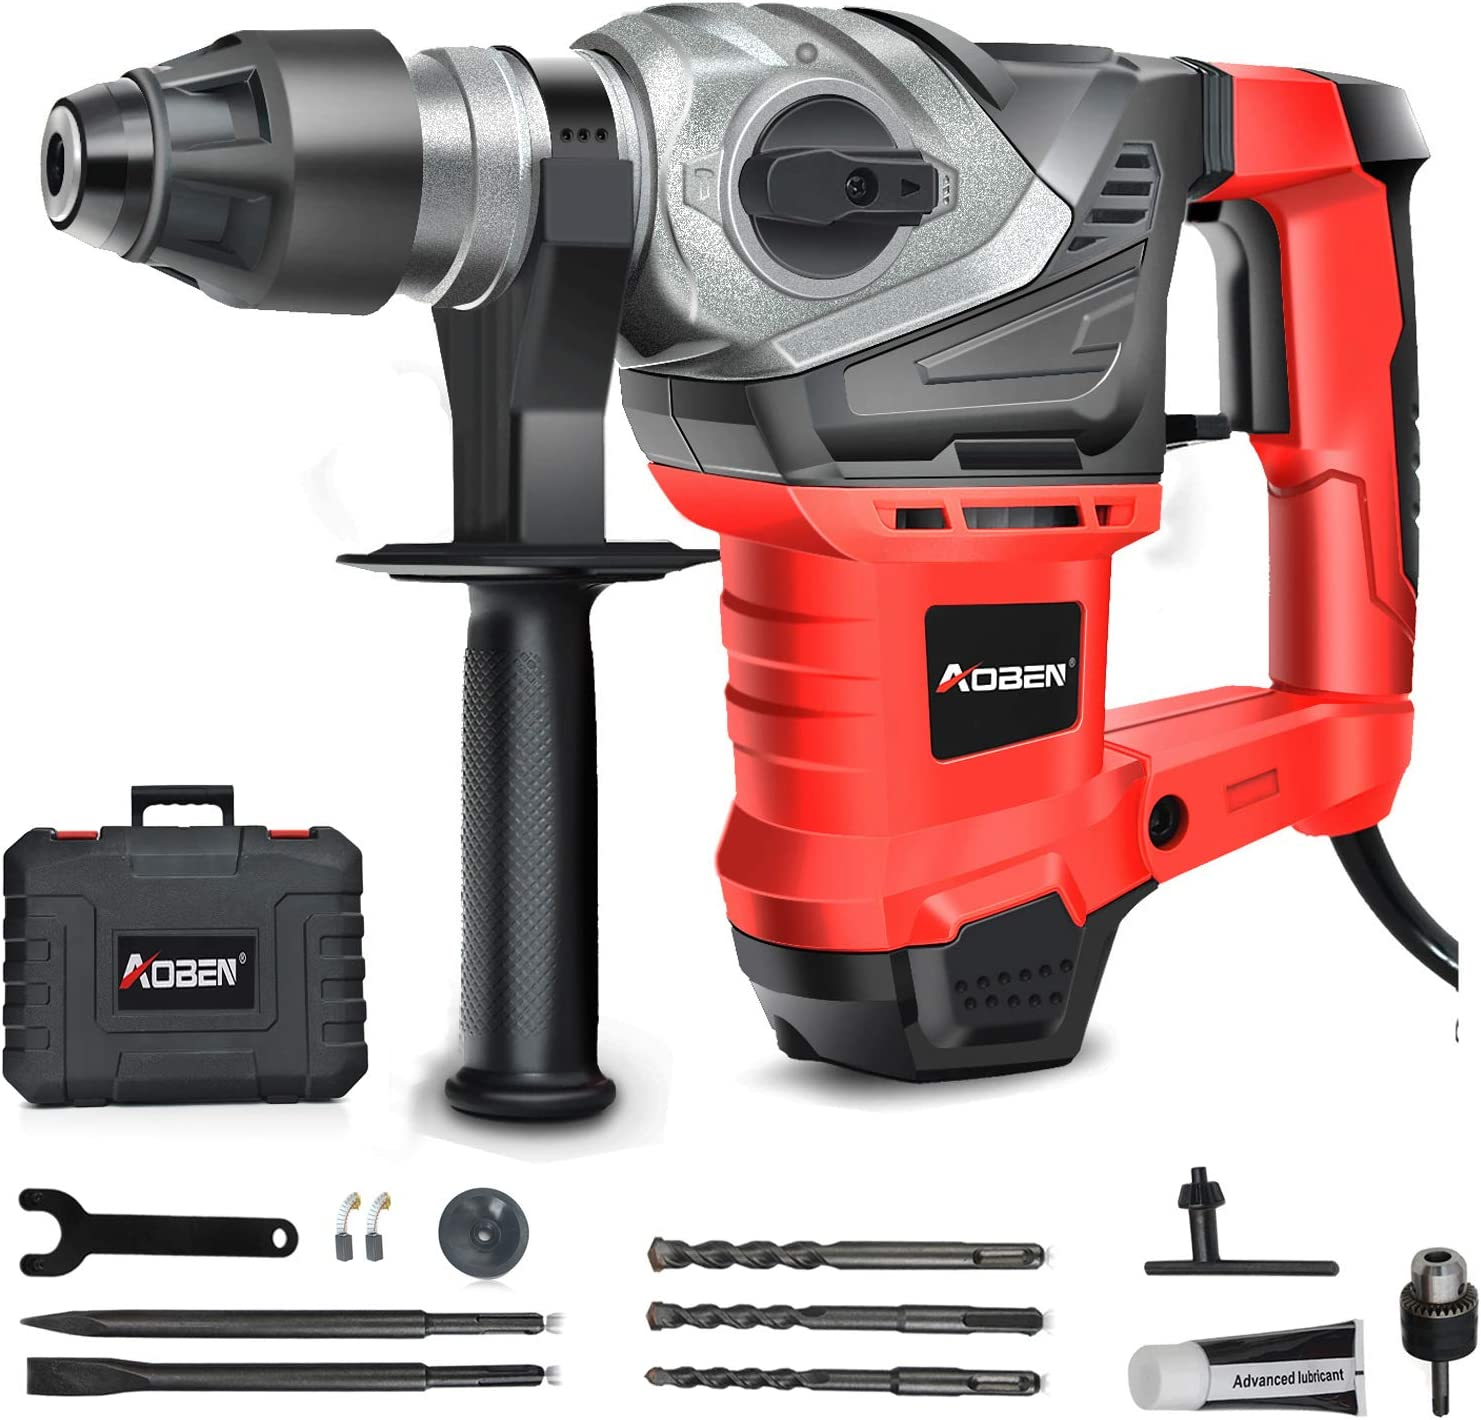 AOBEN SDS-Plus Rotary Hammer Drill with Vibration Control and Safety Clutch,13 Amp Heavy Duty Demolition Hammer for Concrete-Including 3 Drill Bits,Flat Chisels, Point Chisels, Drill Chuck and Gre